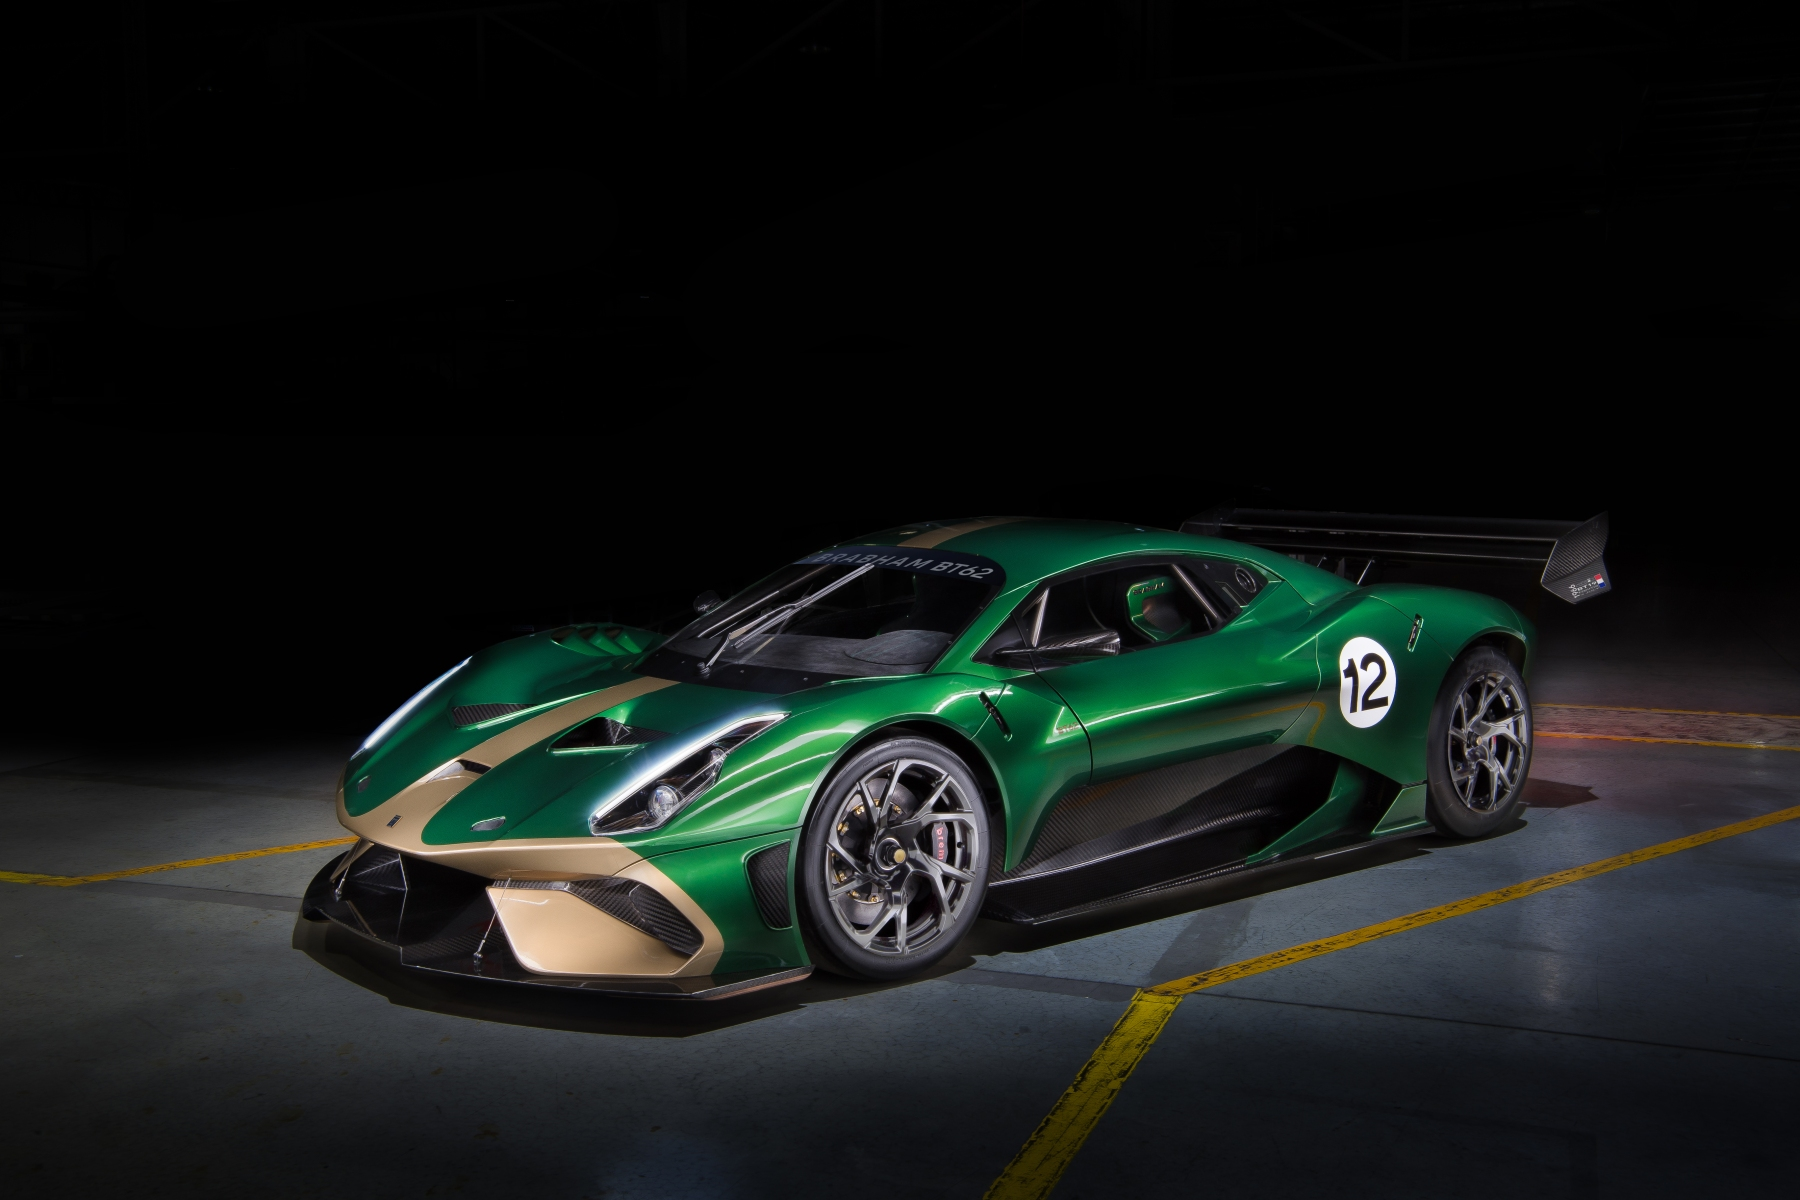 Brabham BT62 Front Quarter View (Brabham Automotive)